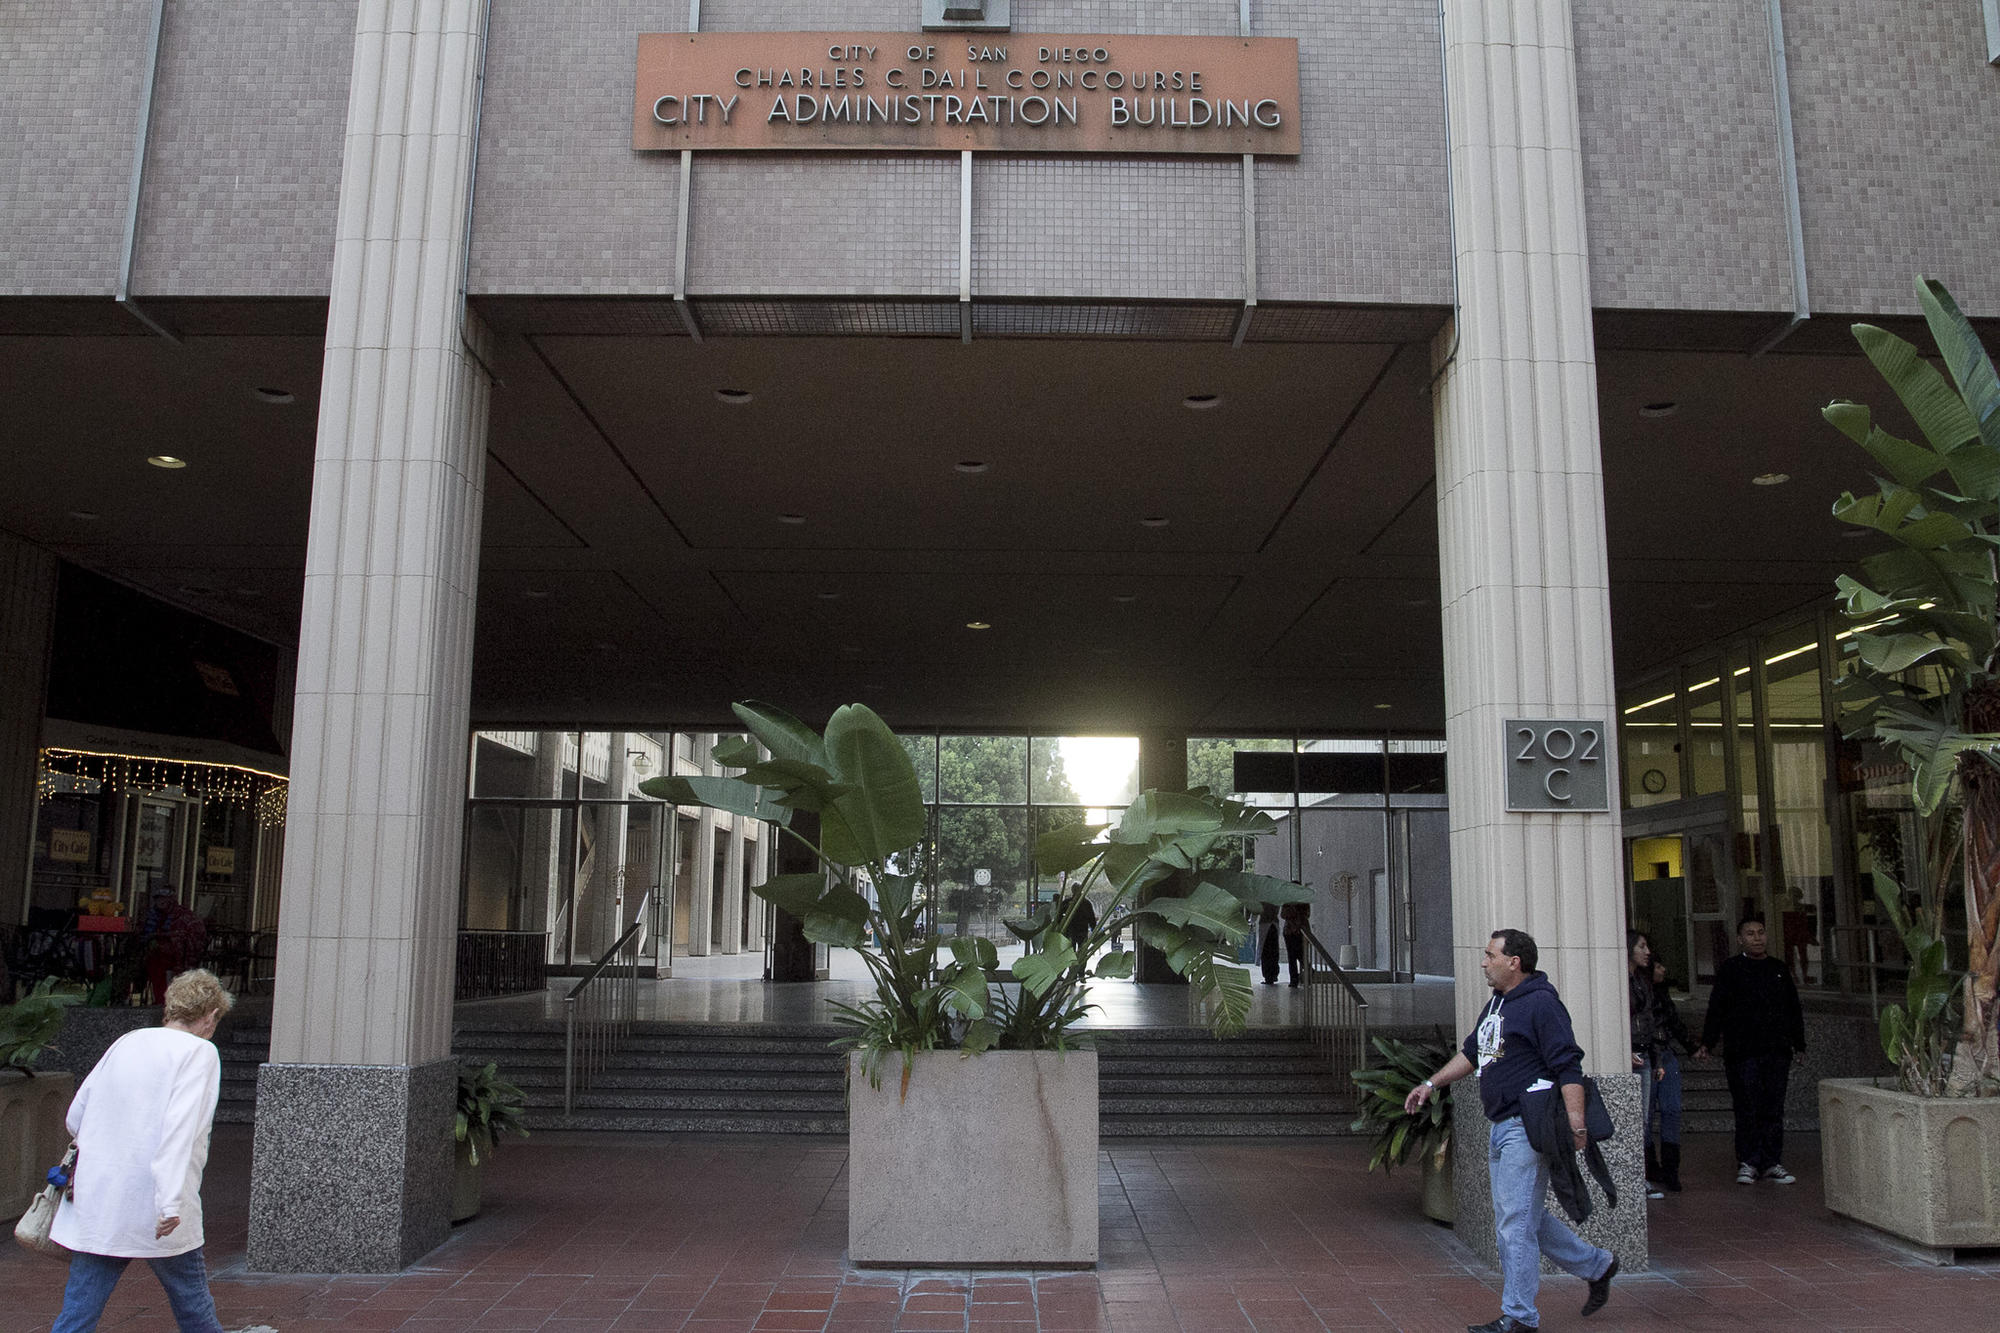 San Diego Administration Building and Community Concourse at 202 C Street.